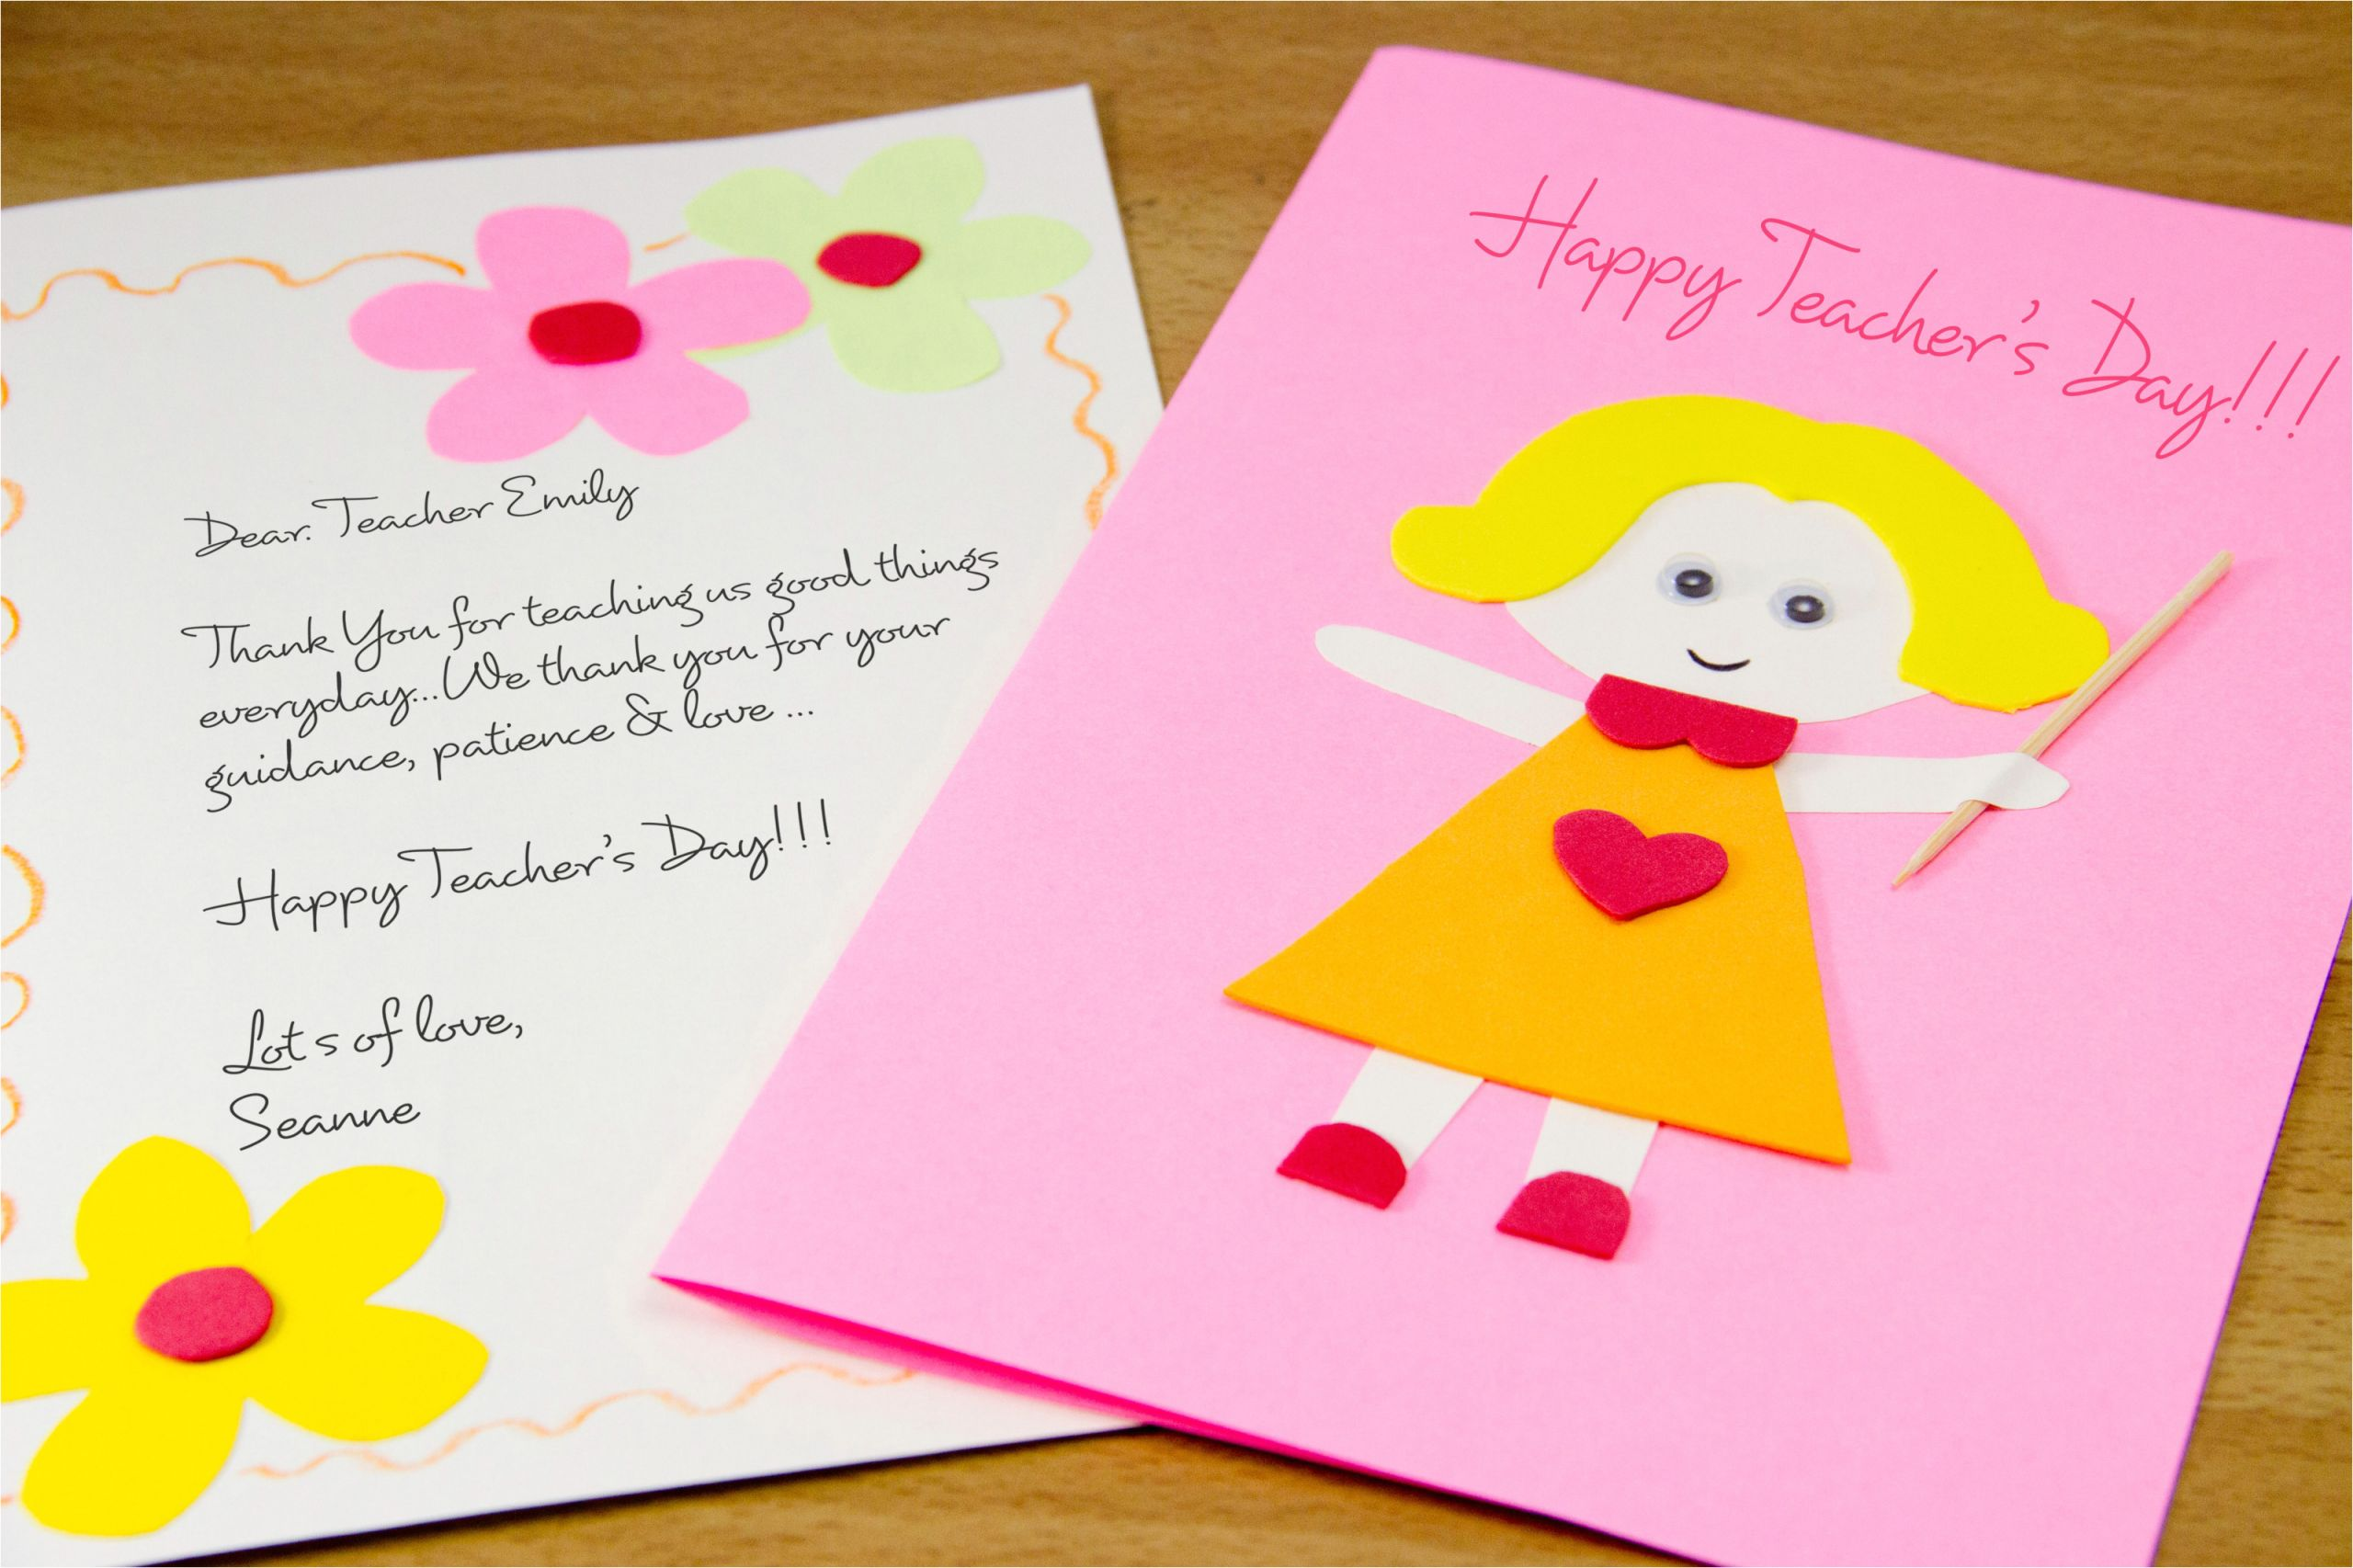 Teachers Day Pop Up Card How to Make A Homemade Teacher S Day Card 7 Steps with